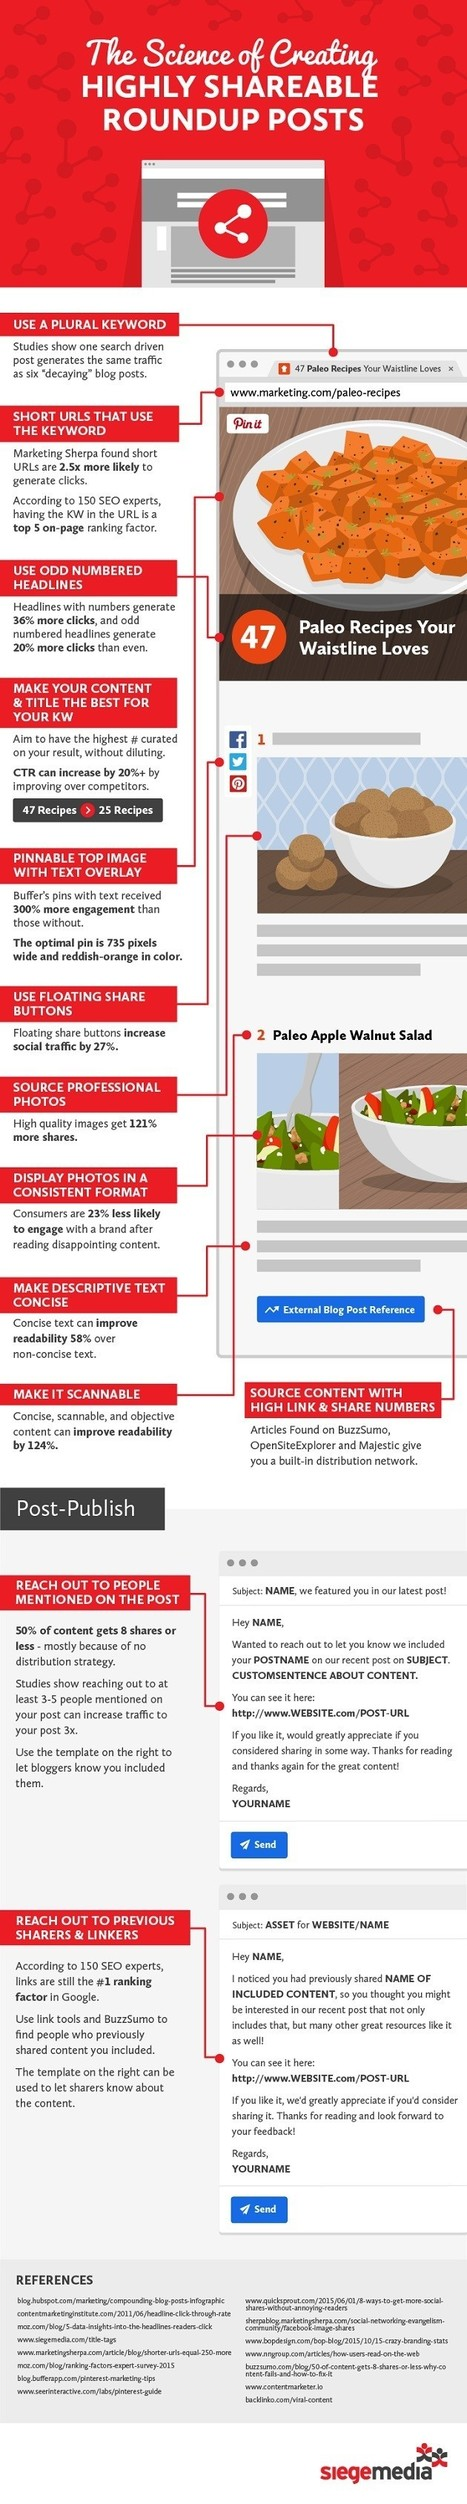 The Science of Creating Highly Shareable Roundup Posts [Infographic] | Integrated Brand Communications | Scoop.it